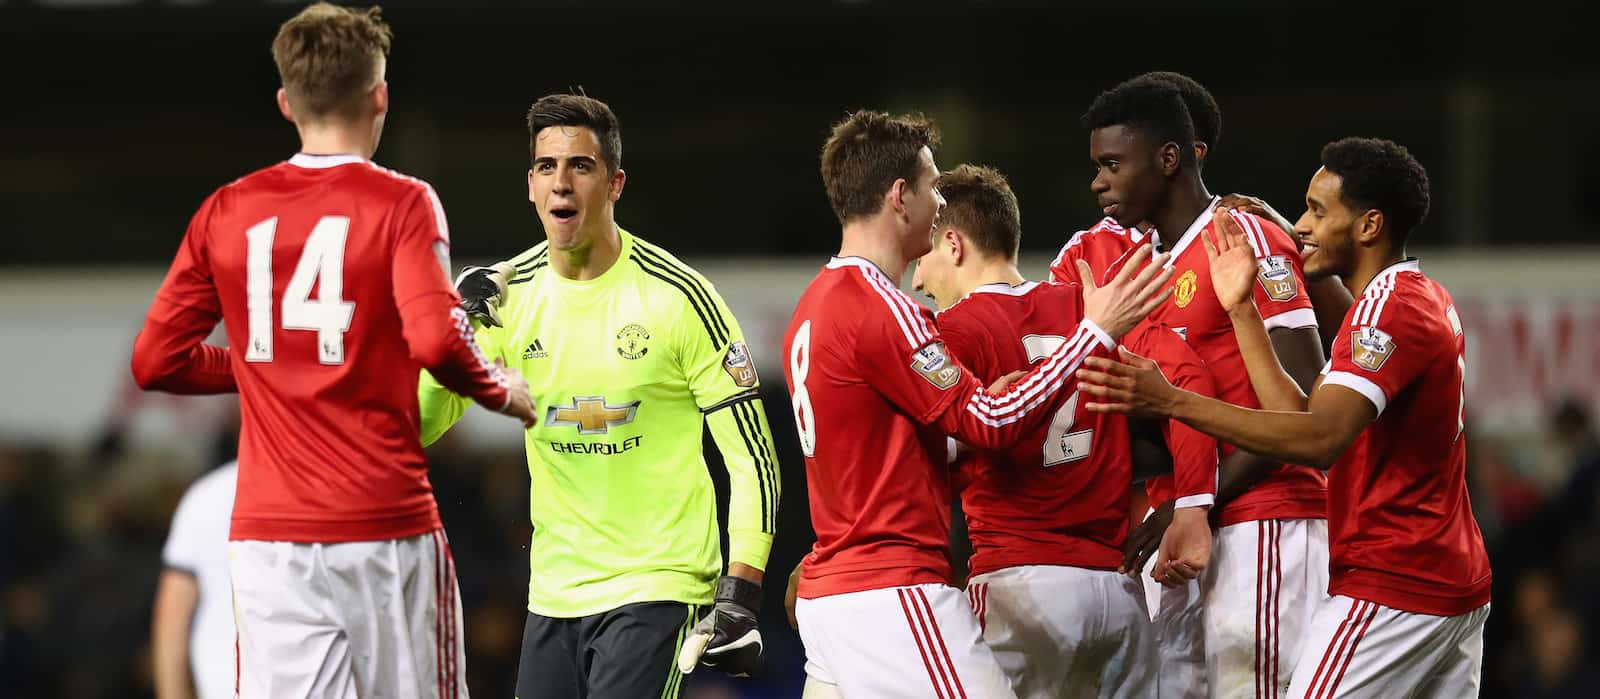 Man United's U21s: The perennial winners upholding our club's traditions